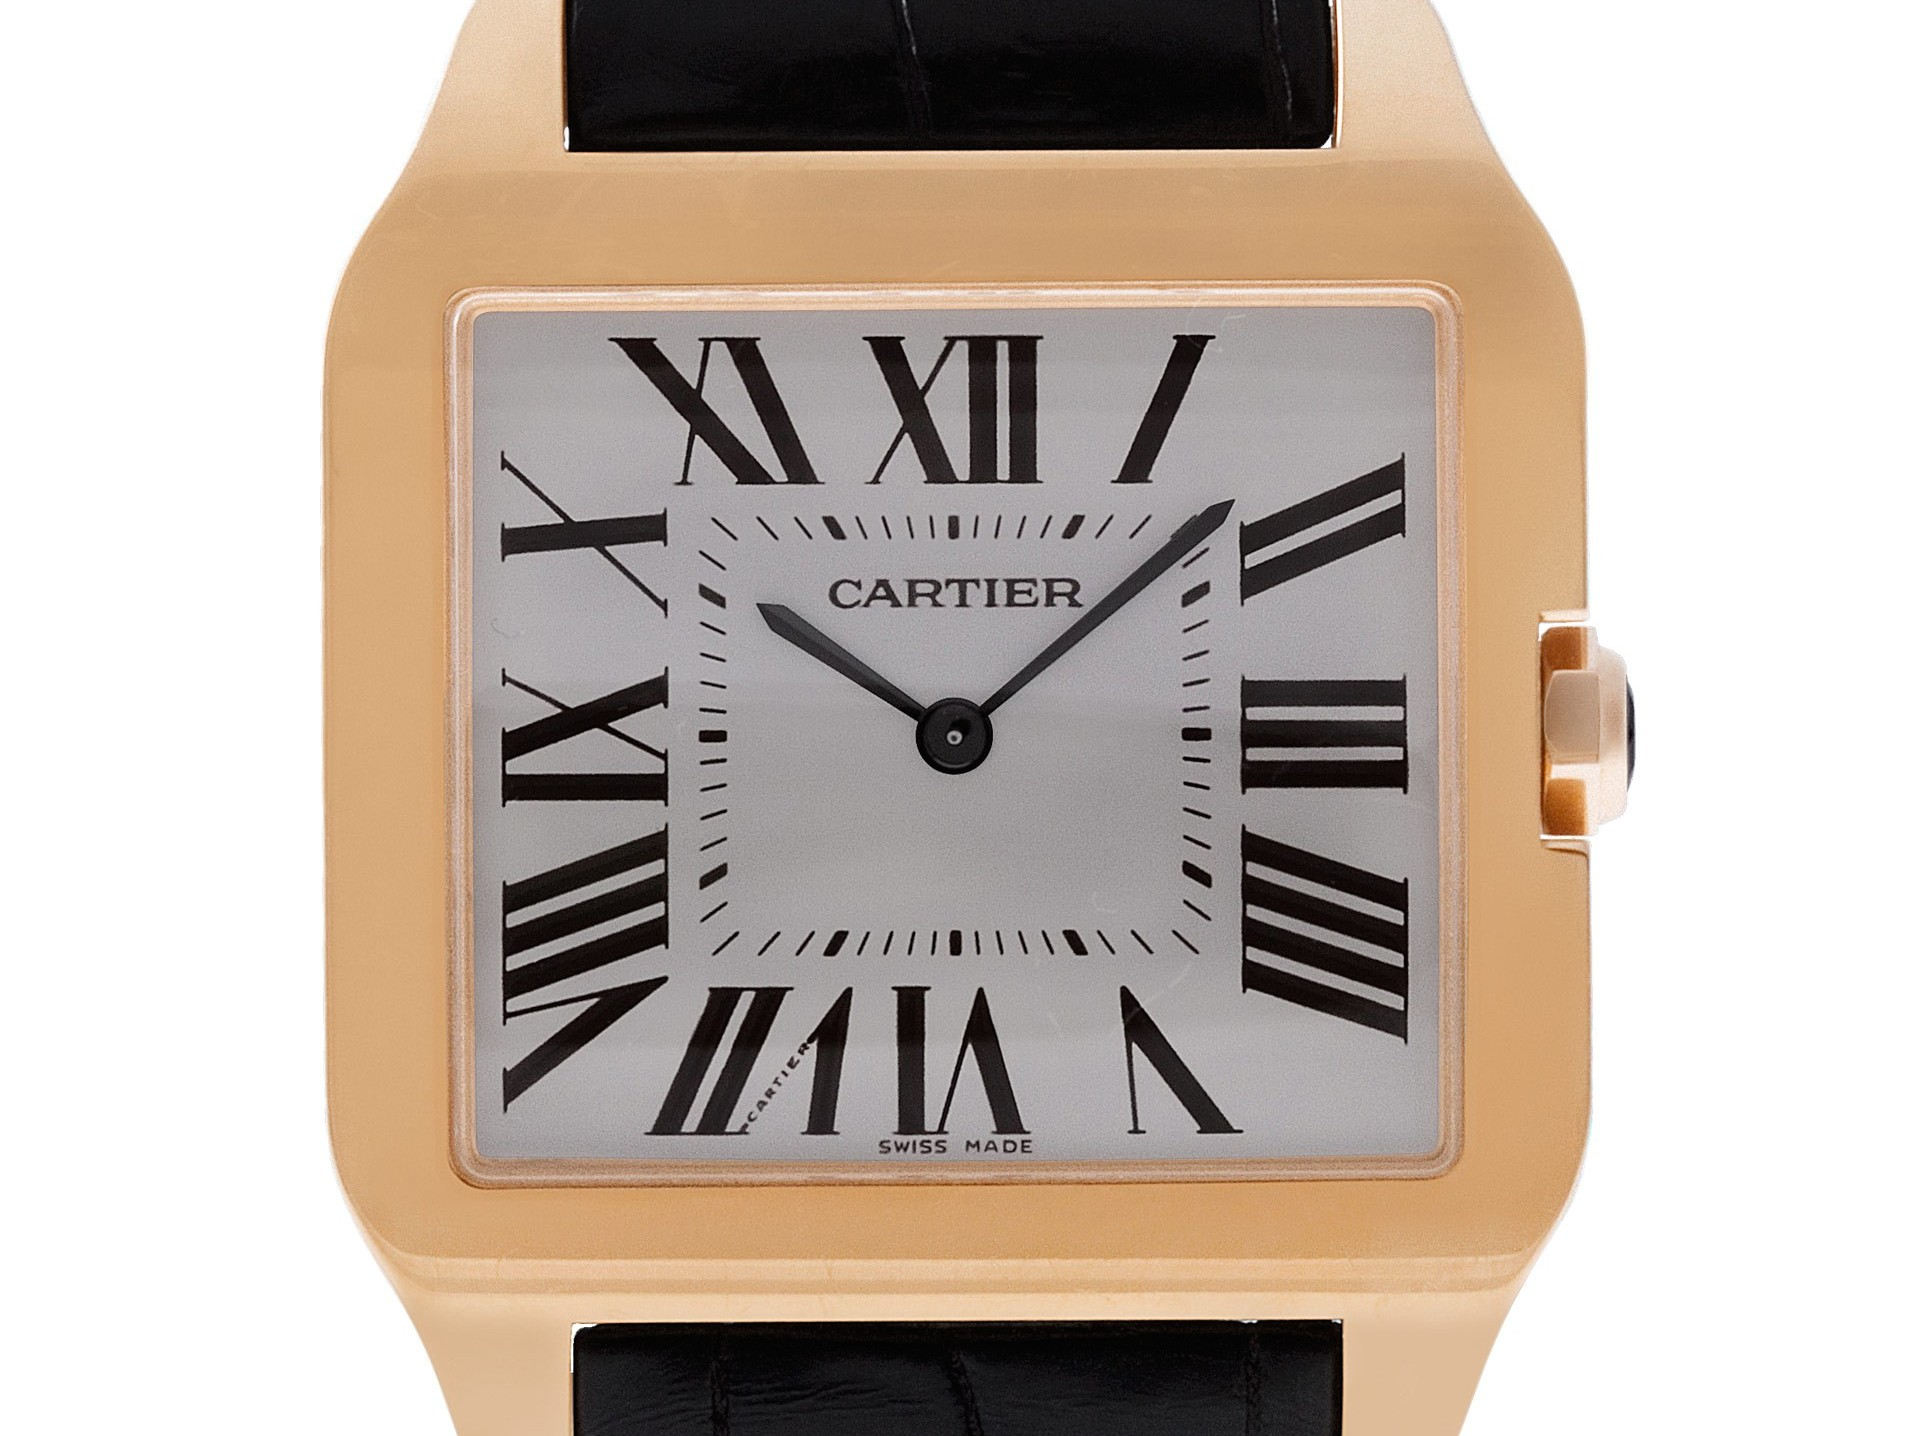 Elegant Dress Watches for Men - The Cartier Santos Dumont